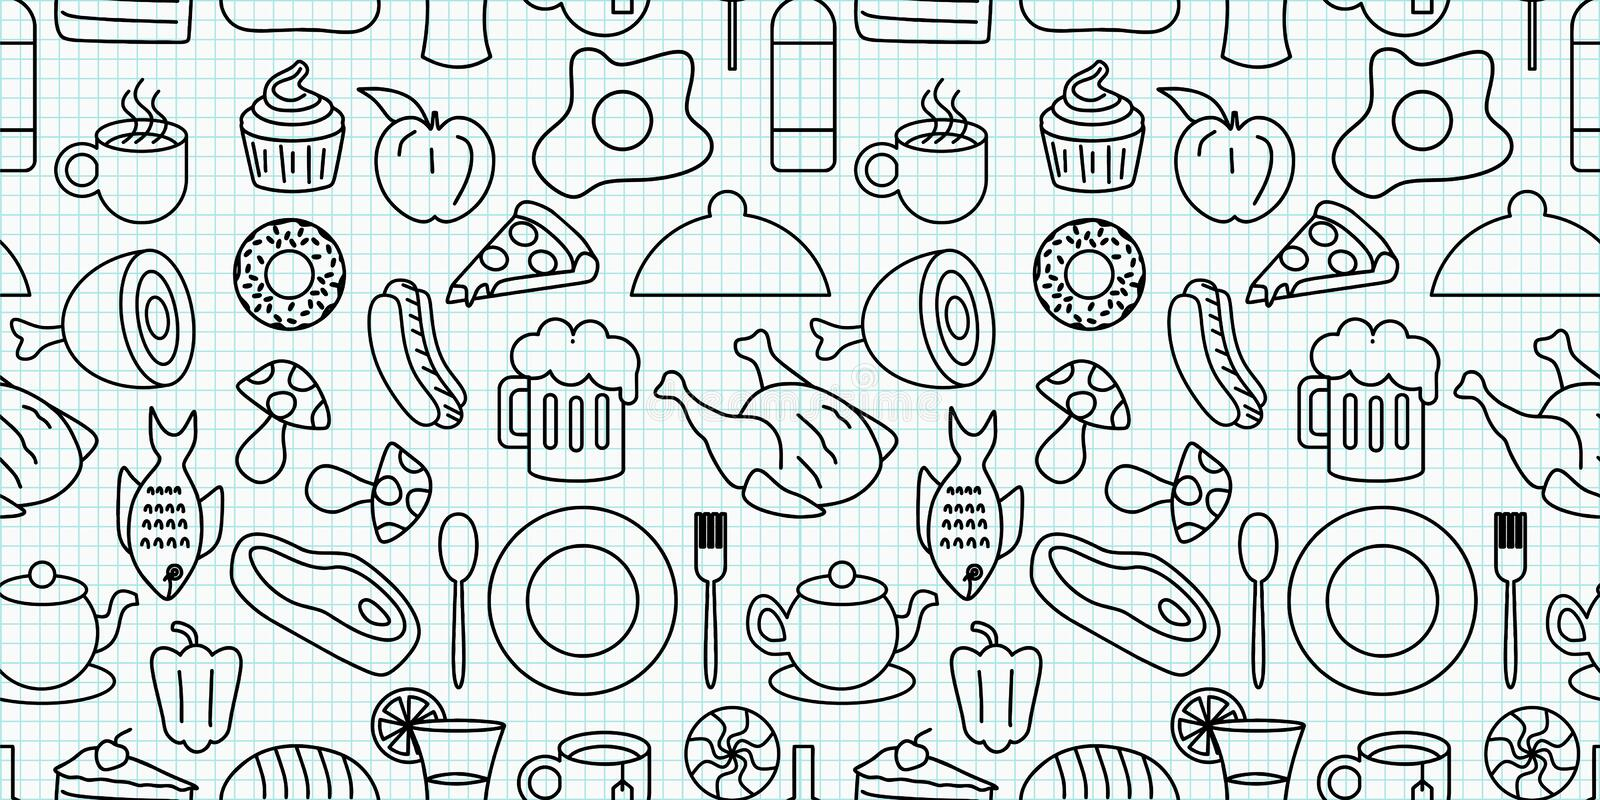 Food and drink doodle elements object seamless pattern vector illustration. Repeated black and white line art design background stock illustration